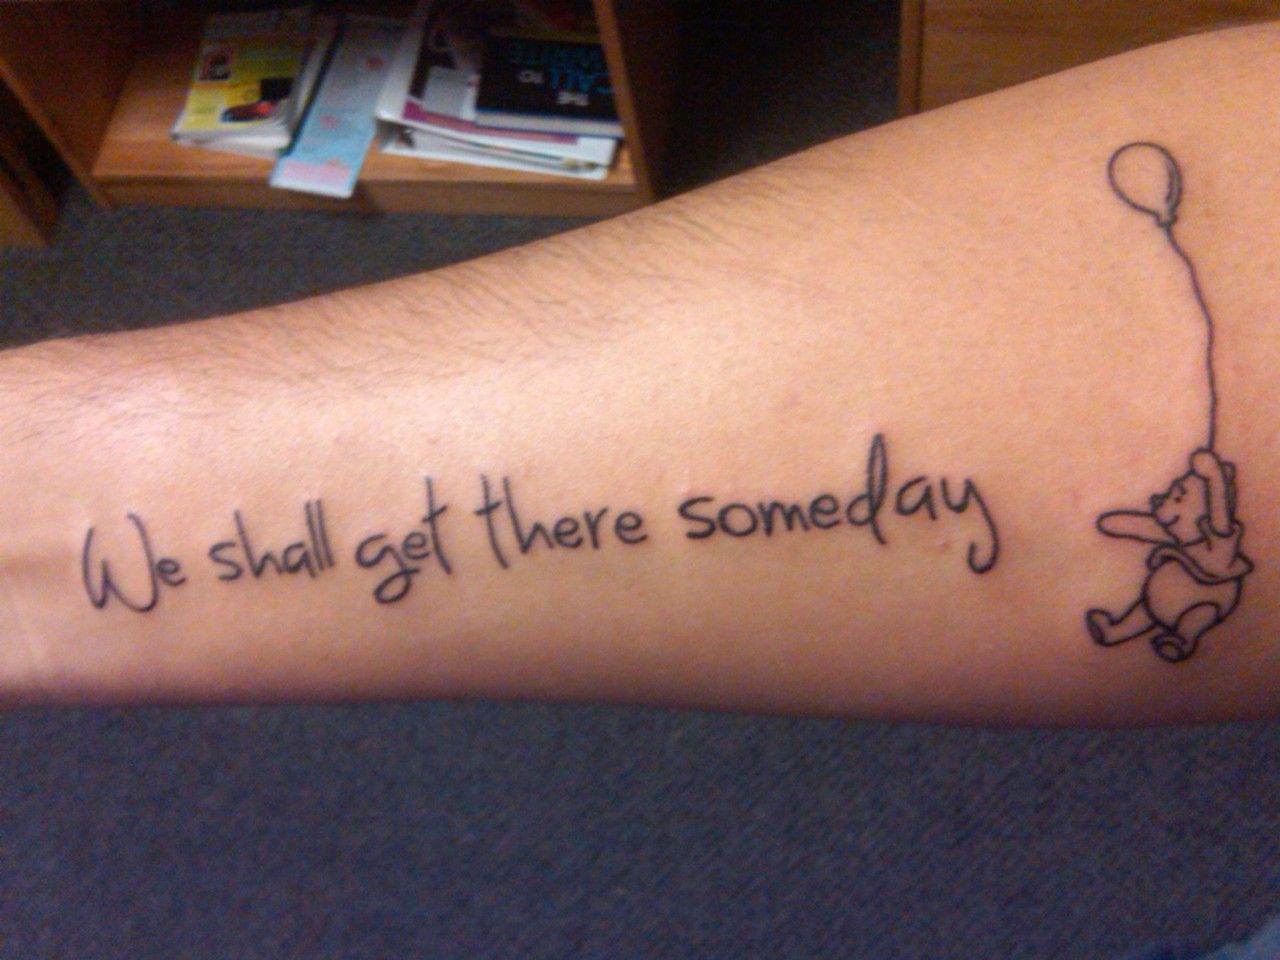 The entire quote reads ucrivers know this there is no hurry we